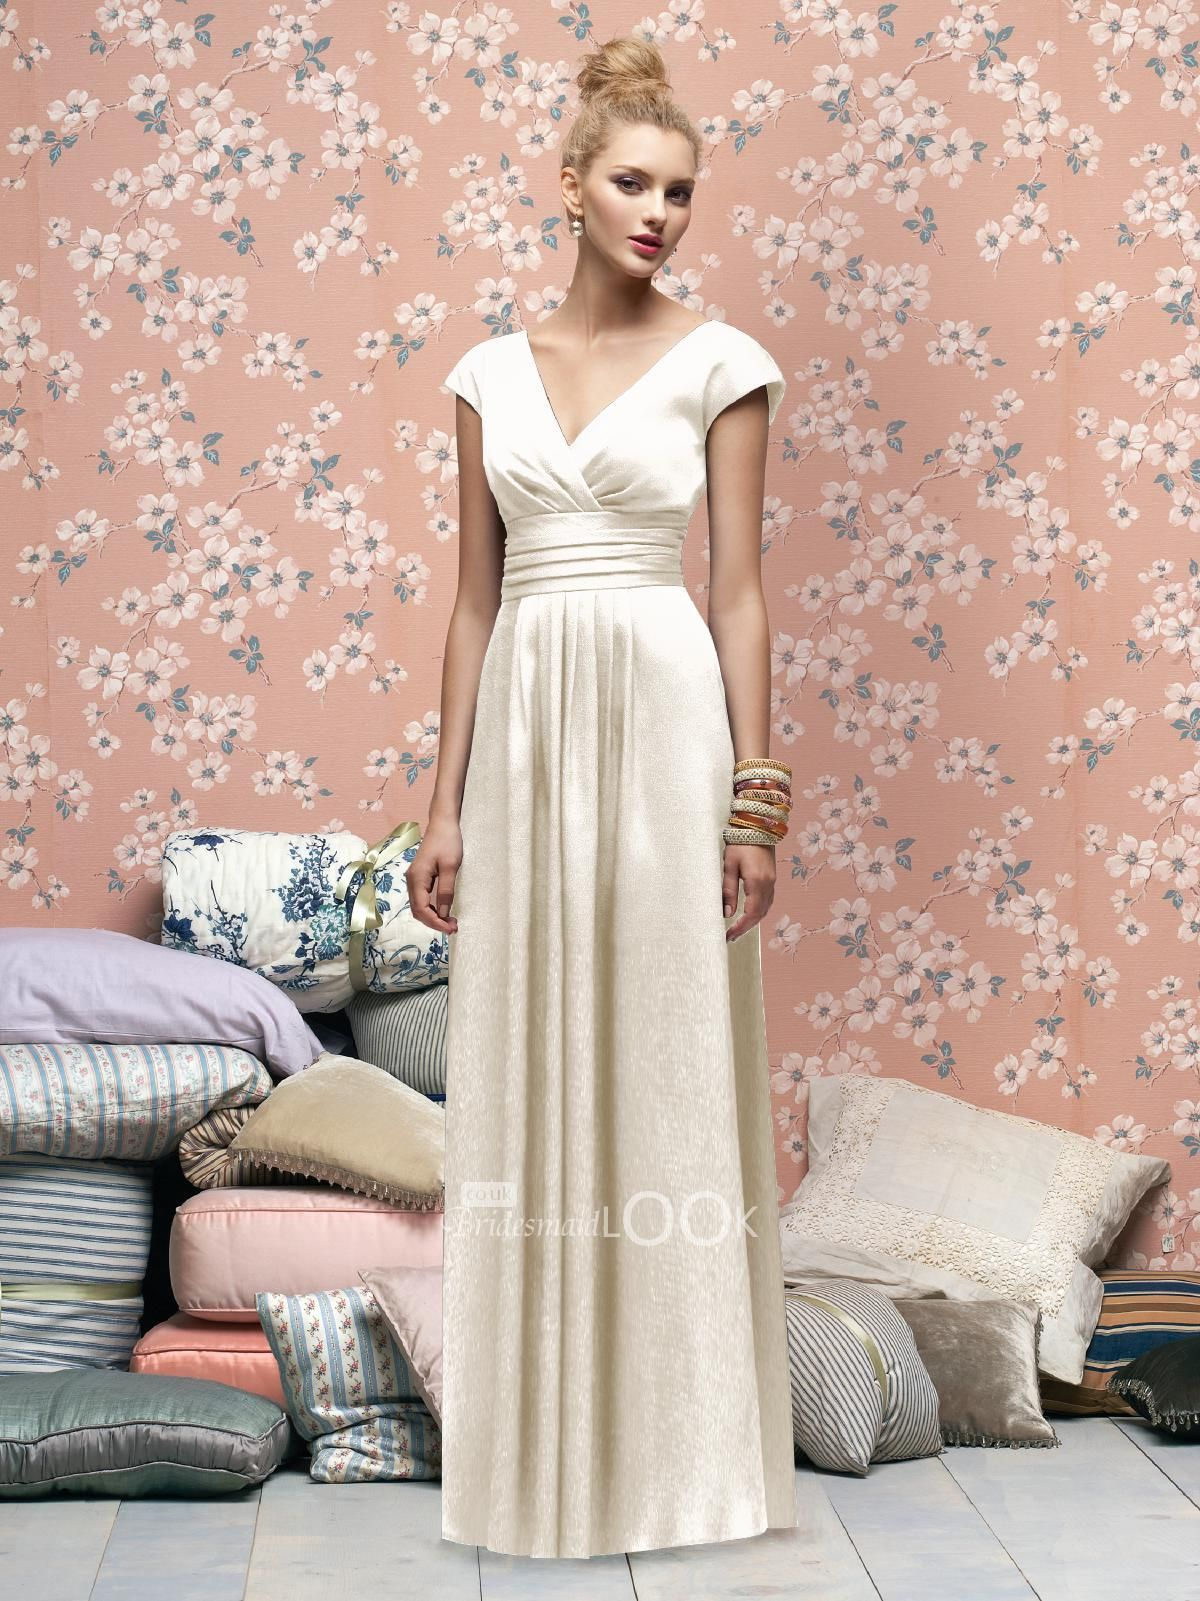 2013 new ivory bridesmaid dress with cap sleeve and v neck wedding 2013 new ivory bridesmaid dress with cap sleeve and v neck ombrellifo Choice Image